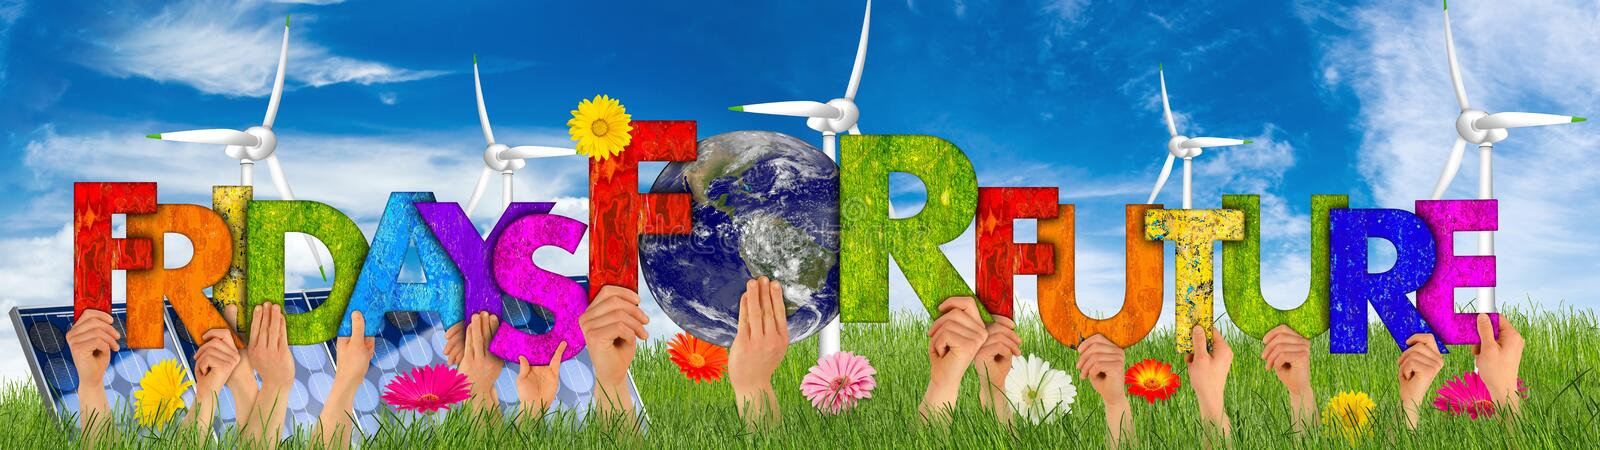 Activist people holding up colorful wooden letter forming words fridays for future and earth globe blue sky green grass. climate royalty free stock photo